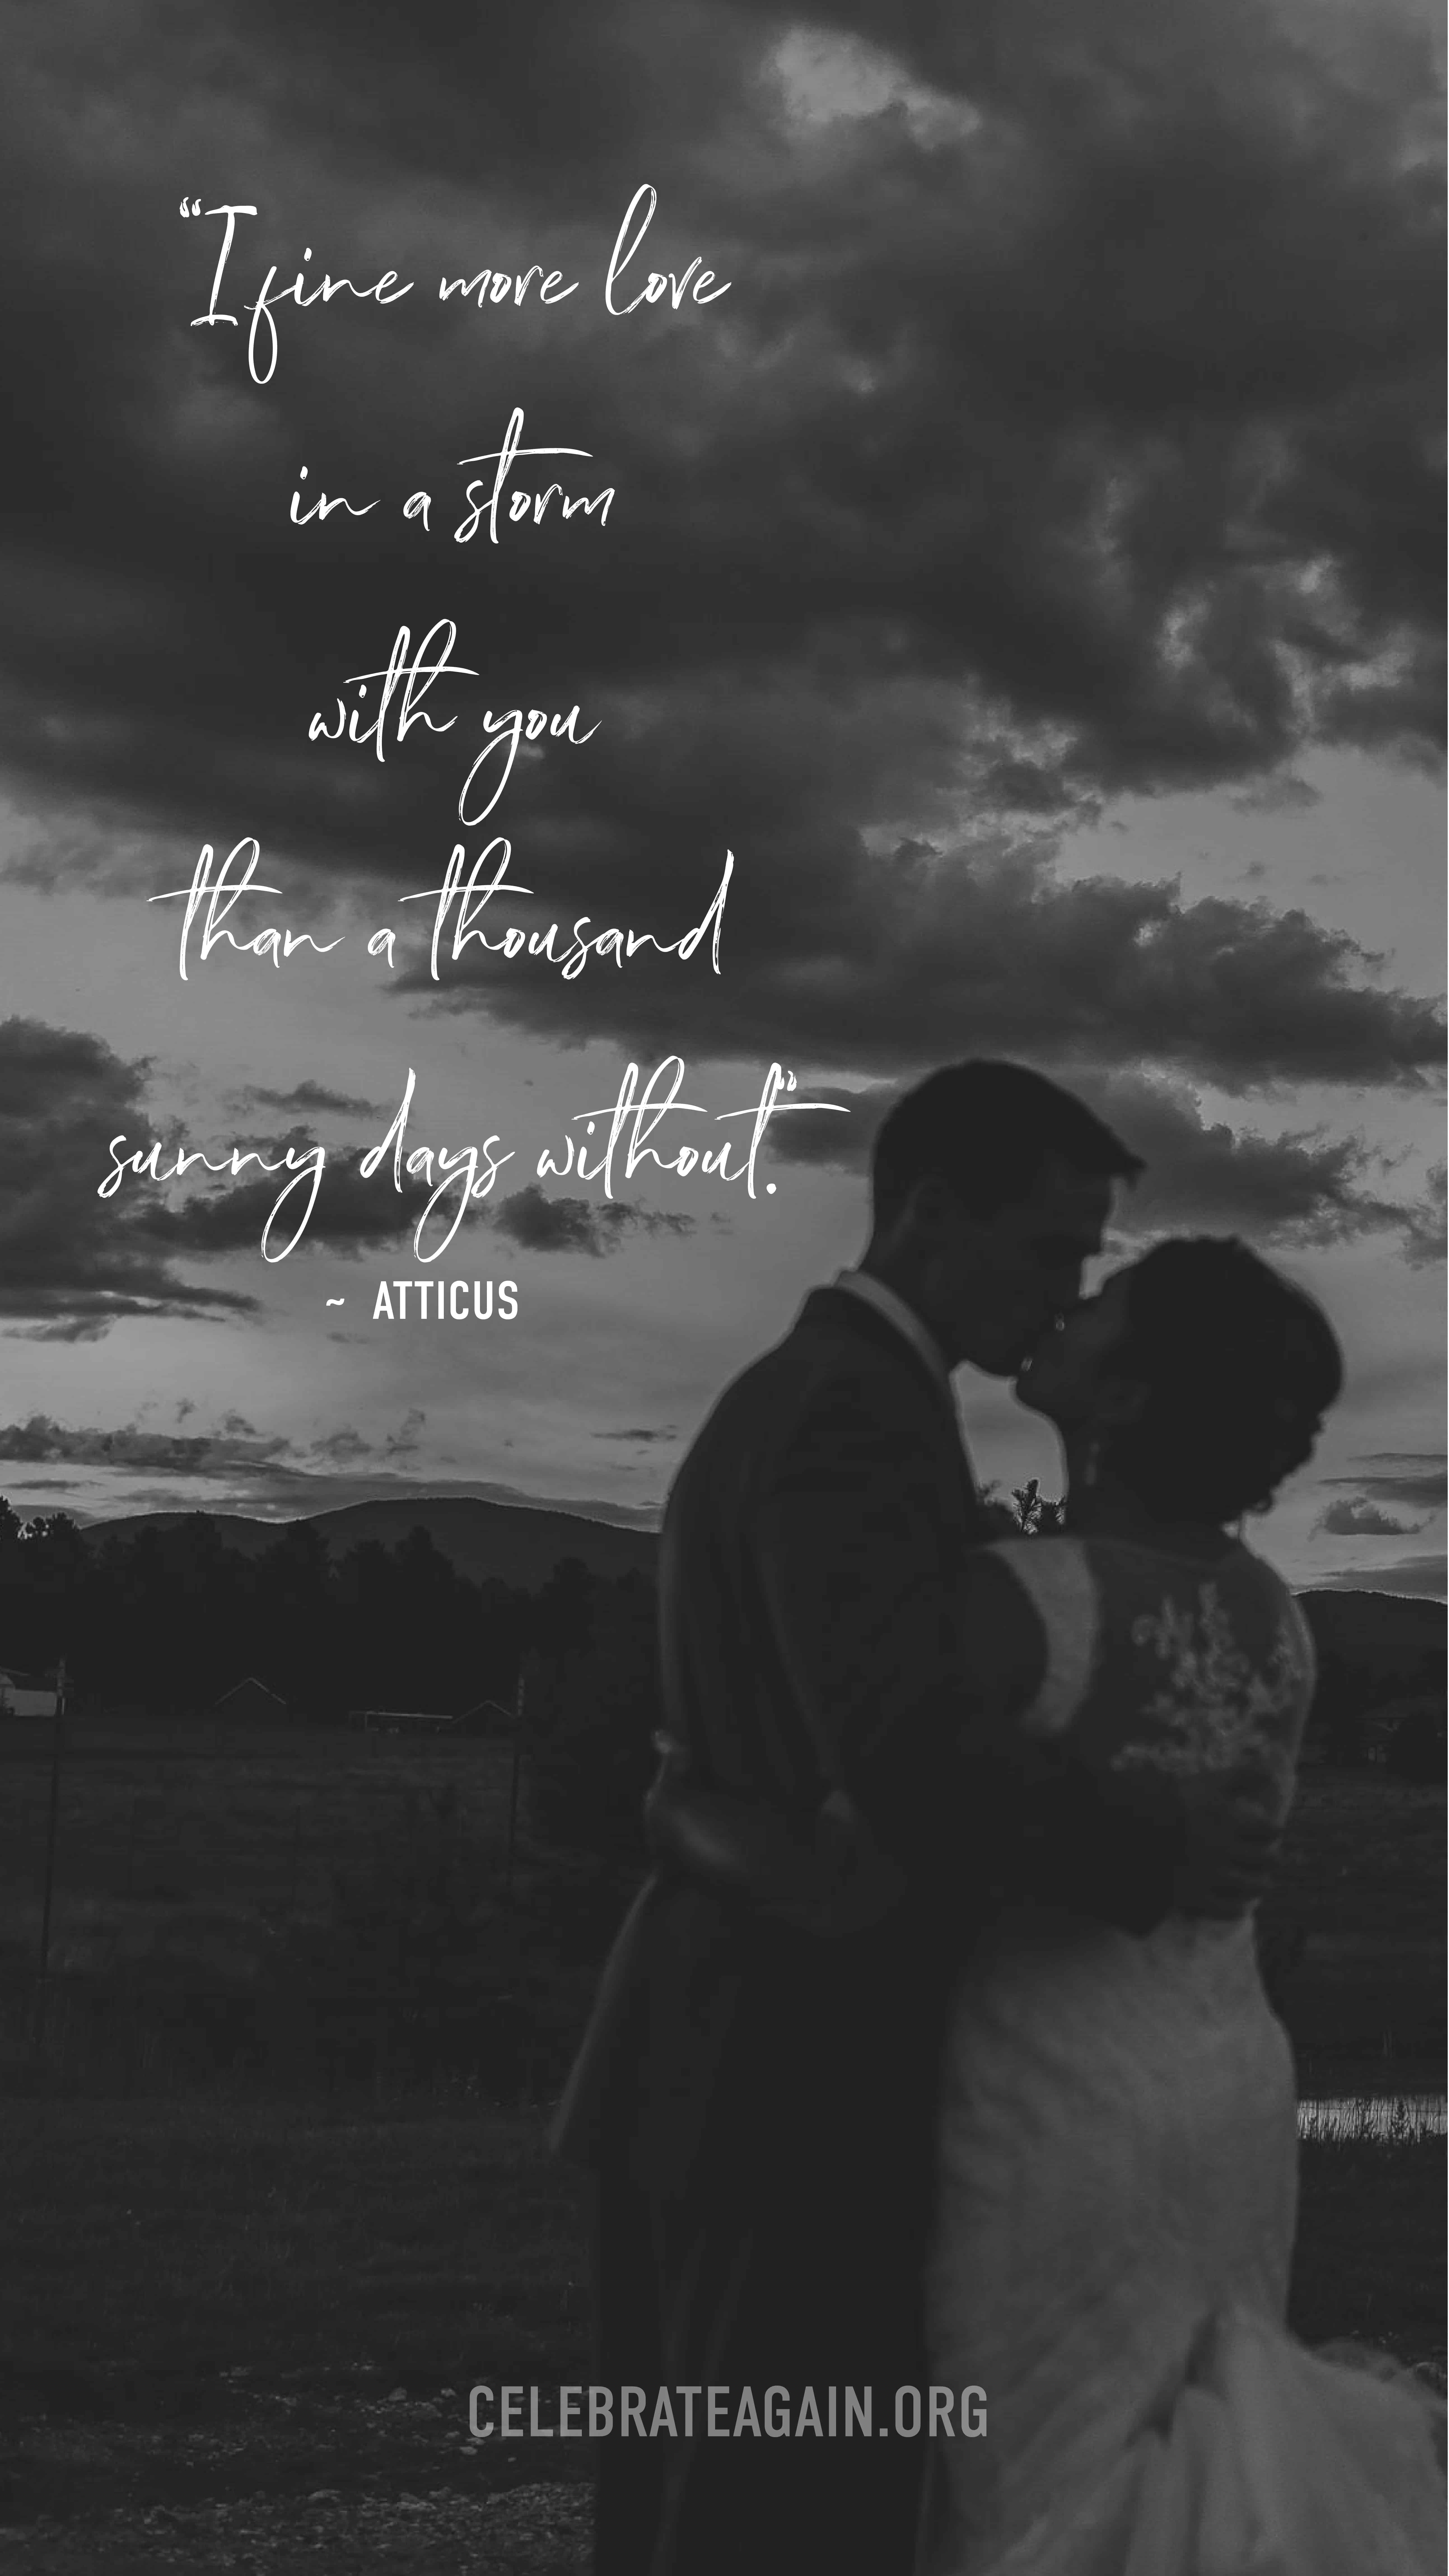 """madly in love quotes for her """"I fine more love in a storm with you than a thousand sunny days without."""" ― Atticus Poetry, The Truth About Magic image of couple near stormy clouds photo by celebrateagain.org"""